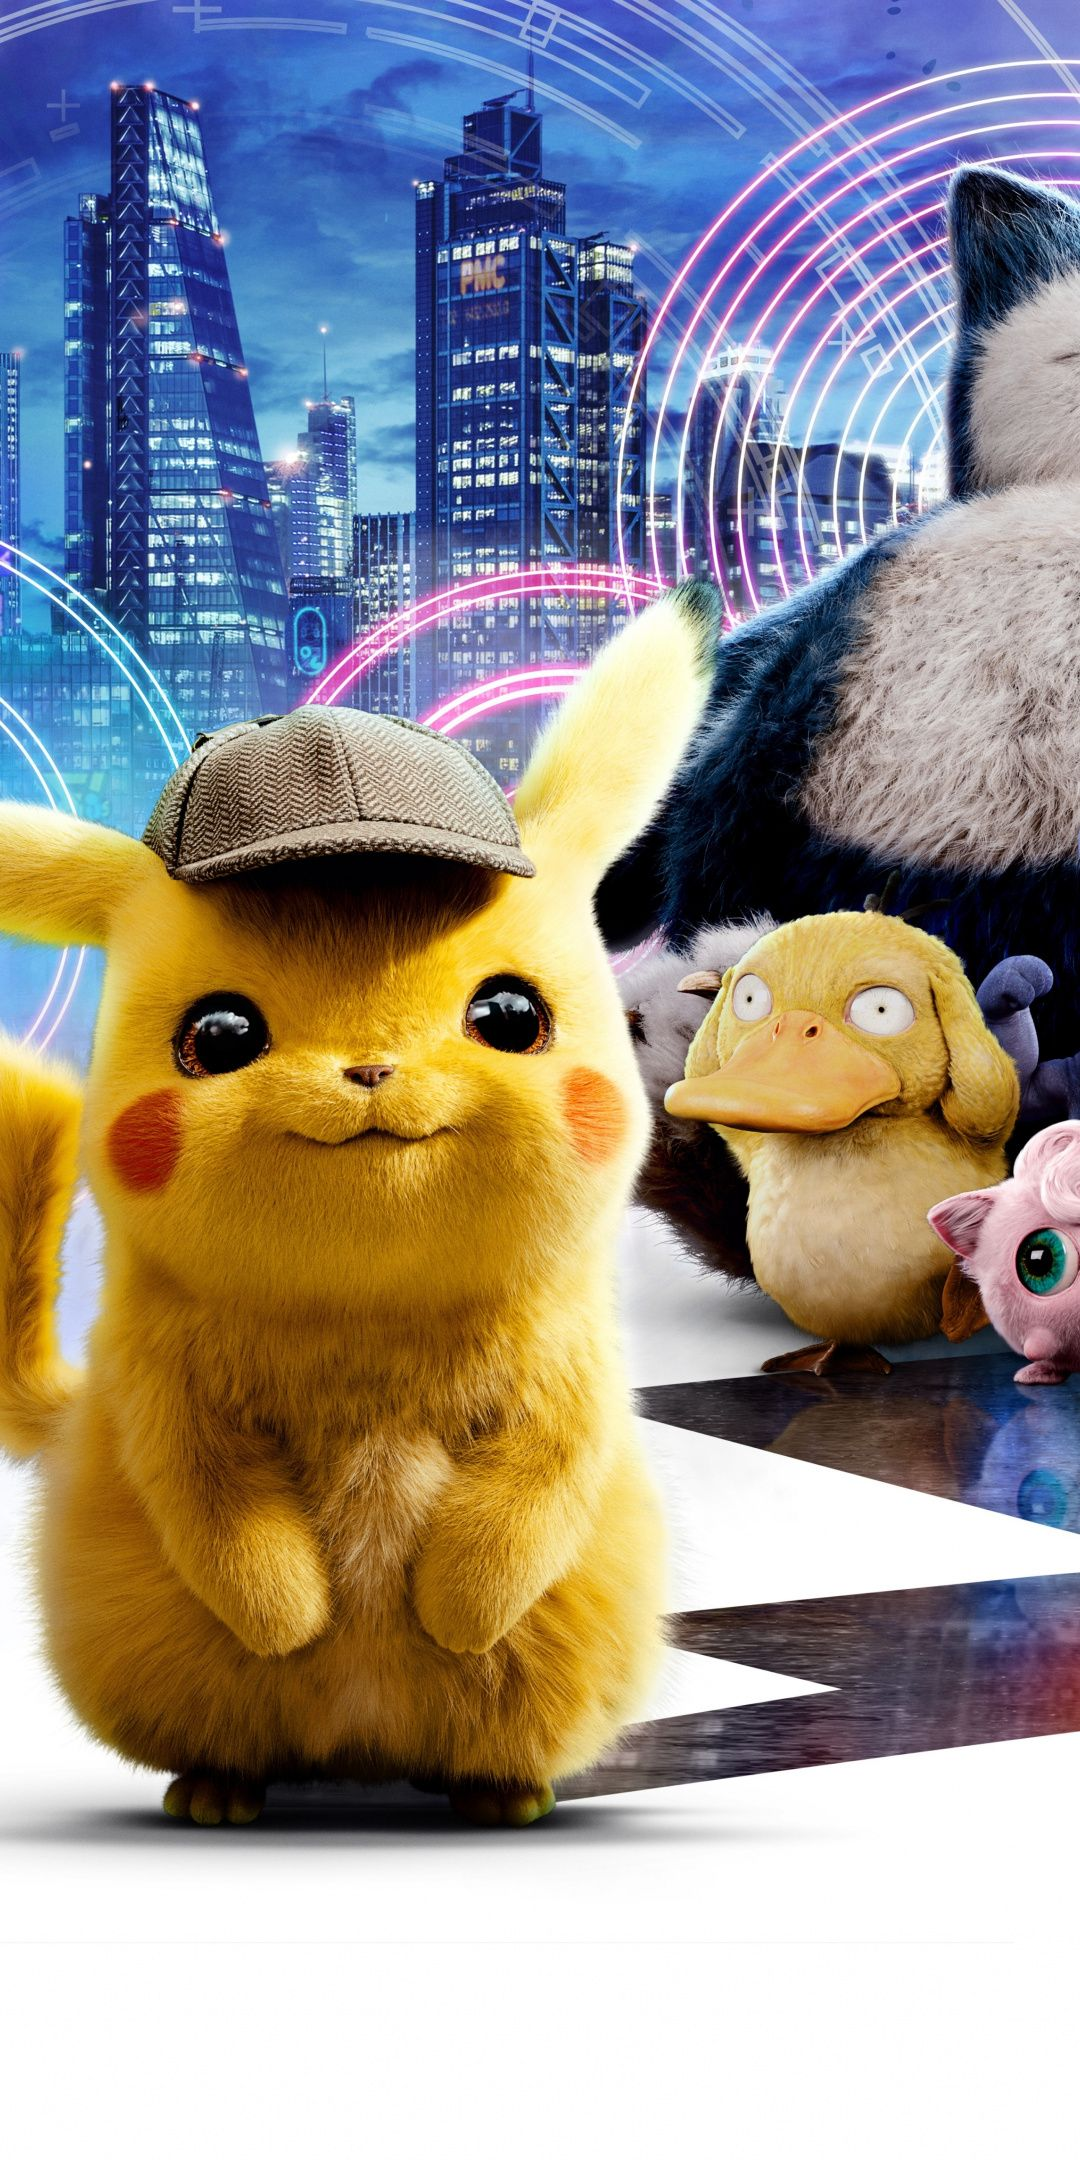 1080x2160 Movie 2019 Pokemon Detective Pikachu Pokemon Wallpaper Pikachu Pikachu Wallpaper Iphone Pikachu Art